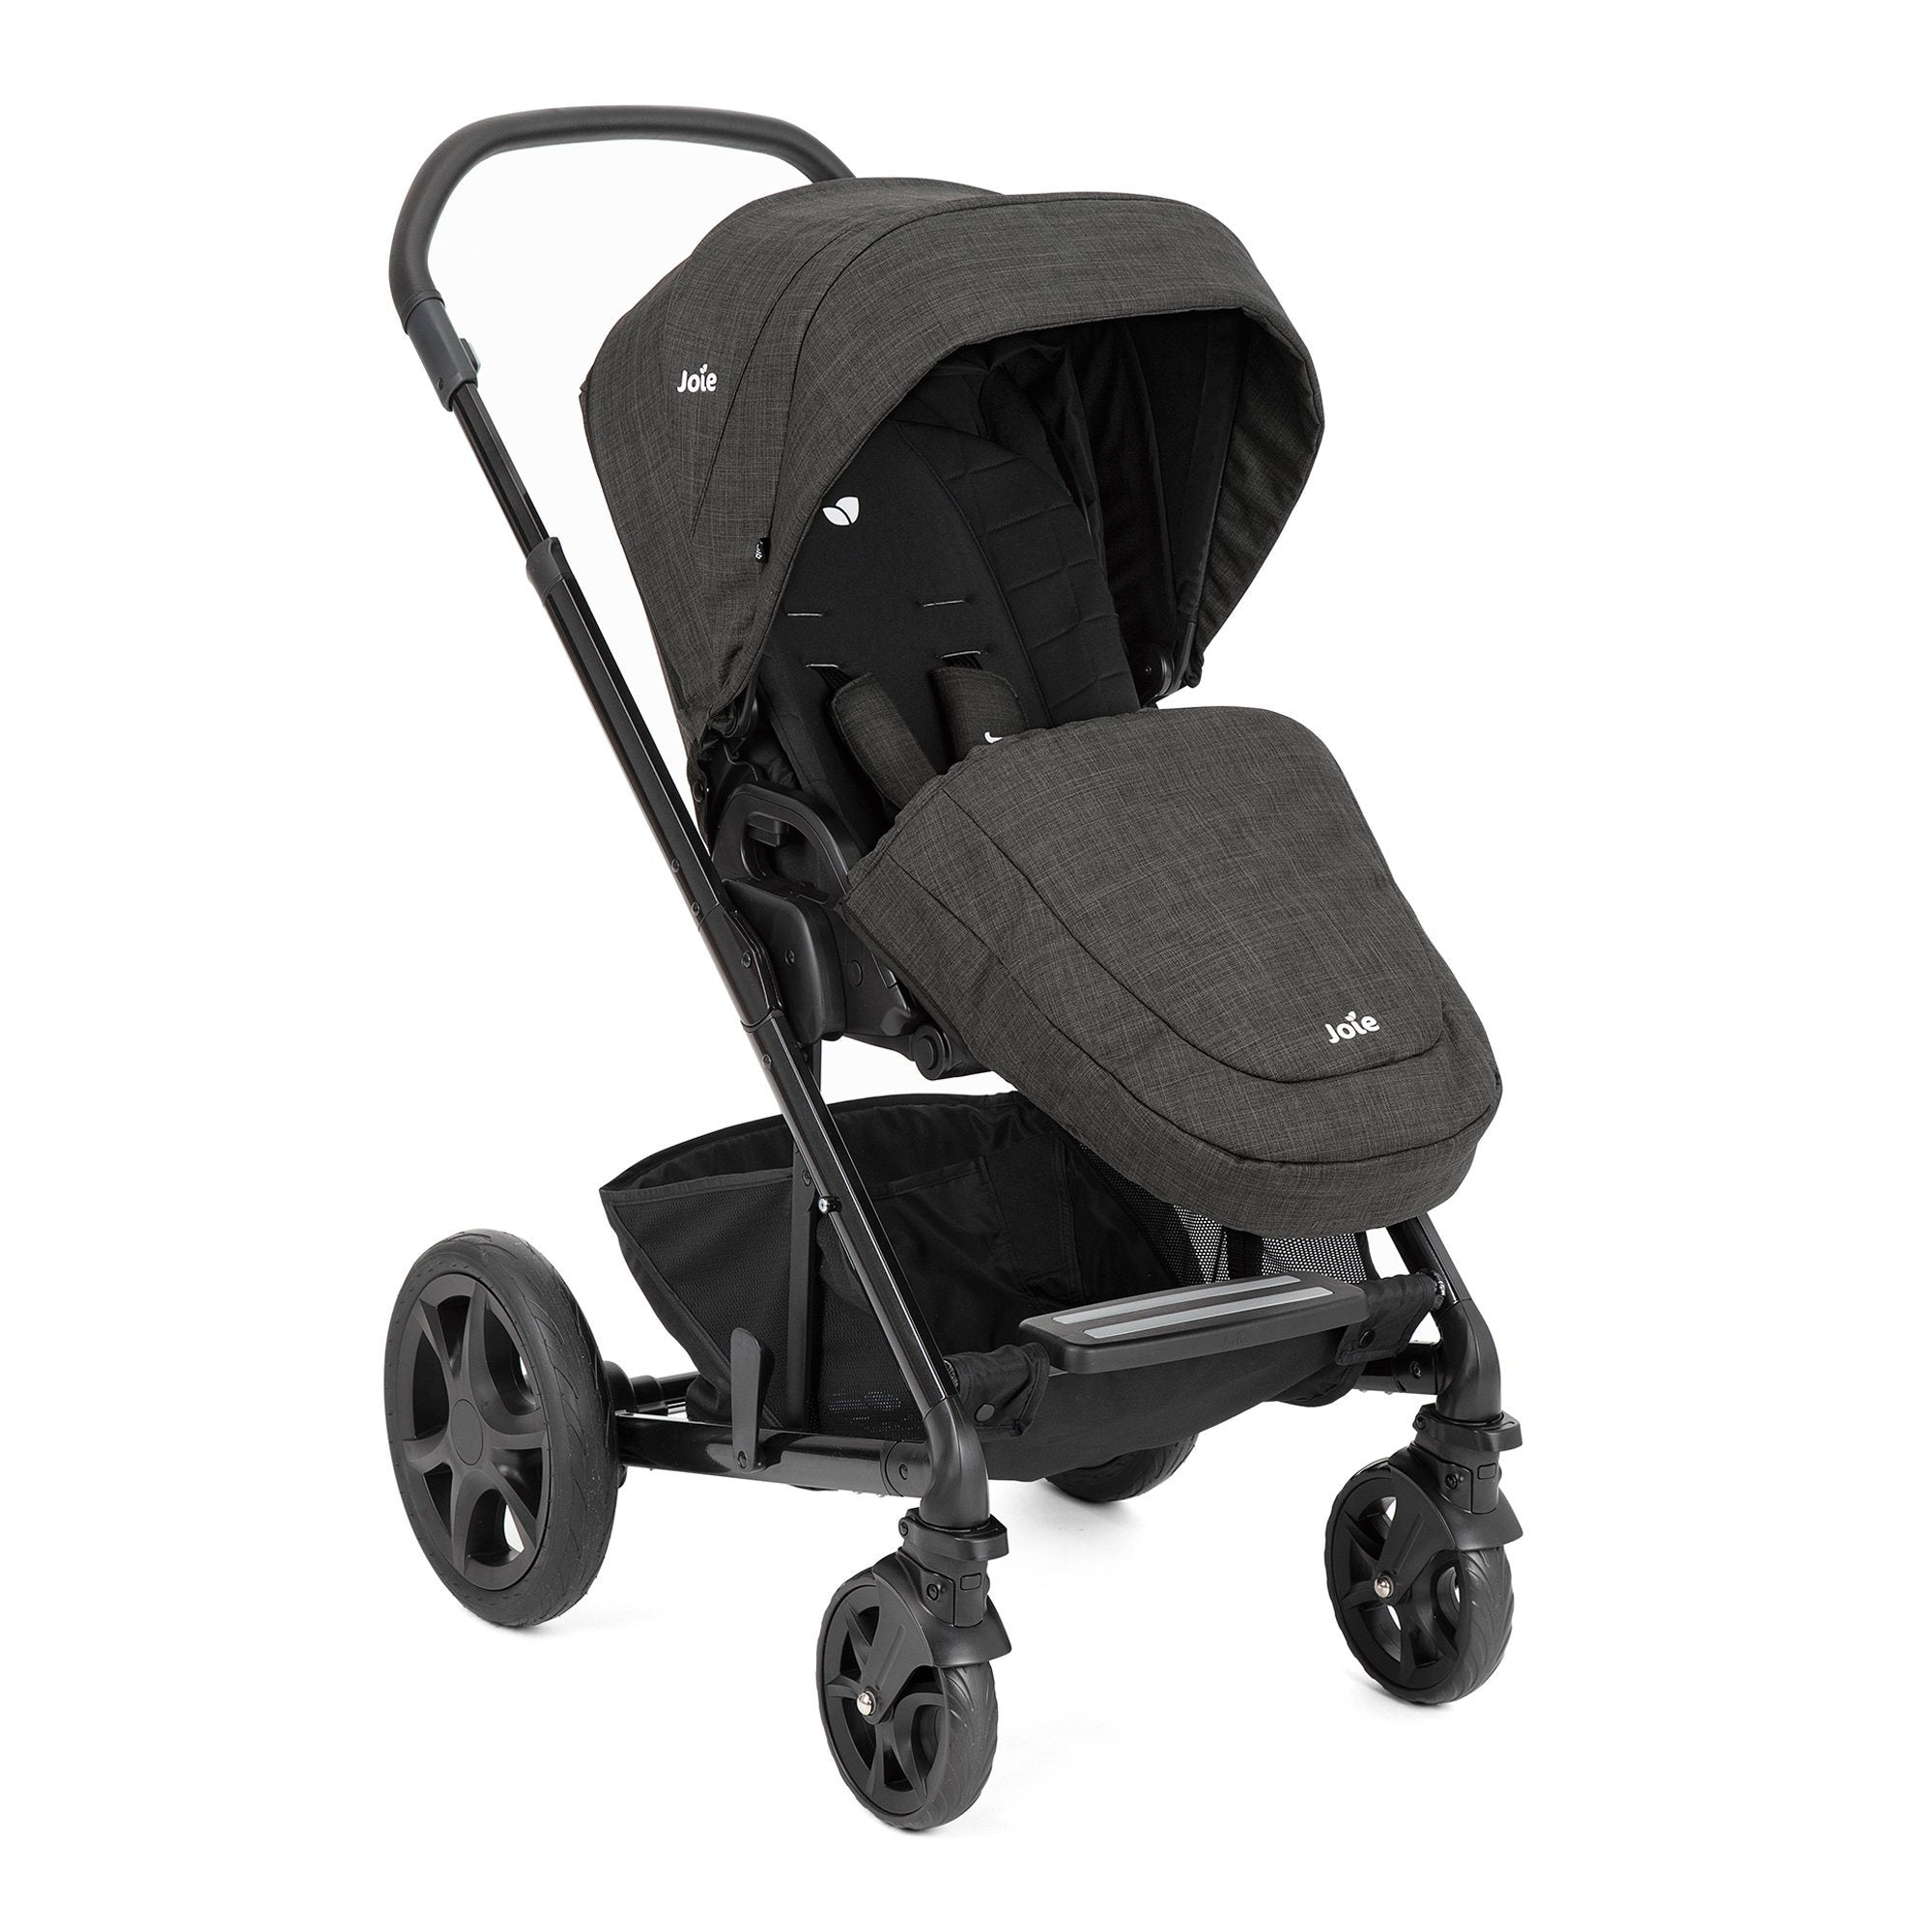 Joie Chrome DLX pushchair & carrycot incl. footmuff - Pavement (Grey) 2020 model - Pushchair Expert